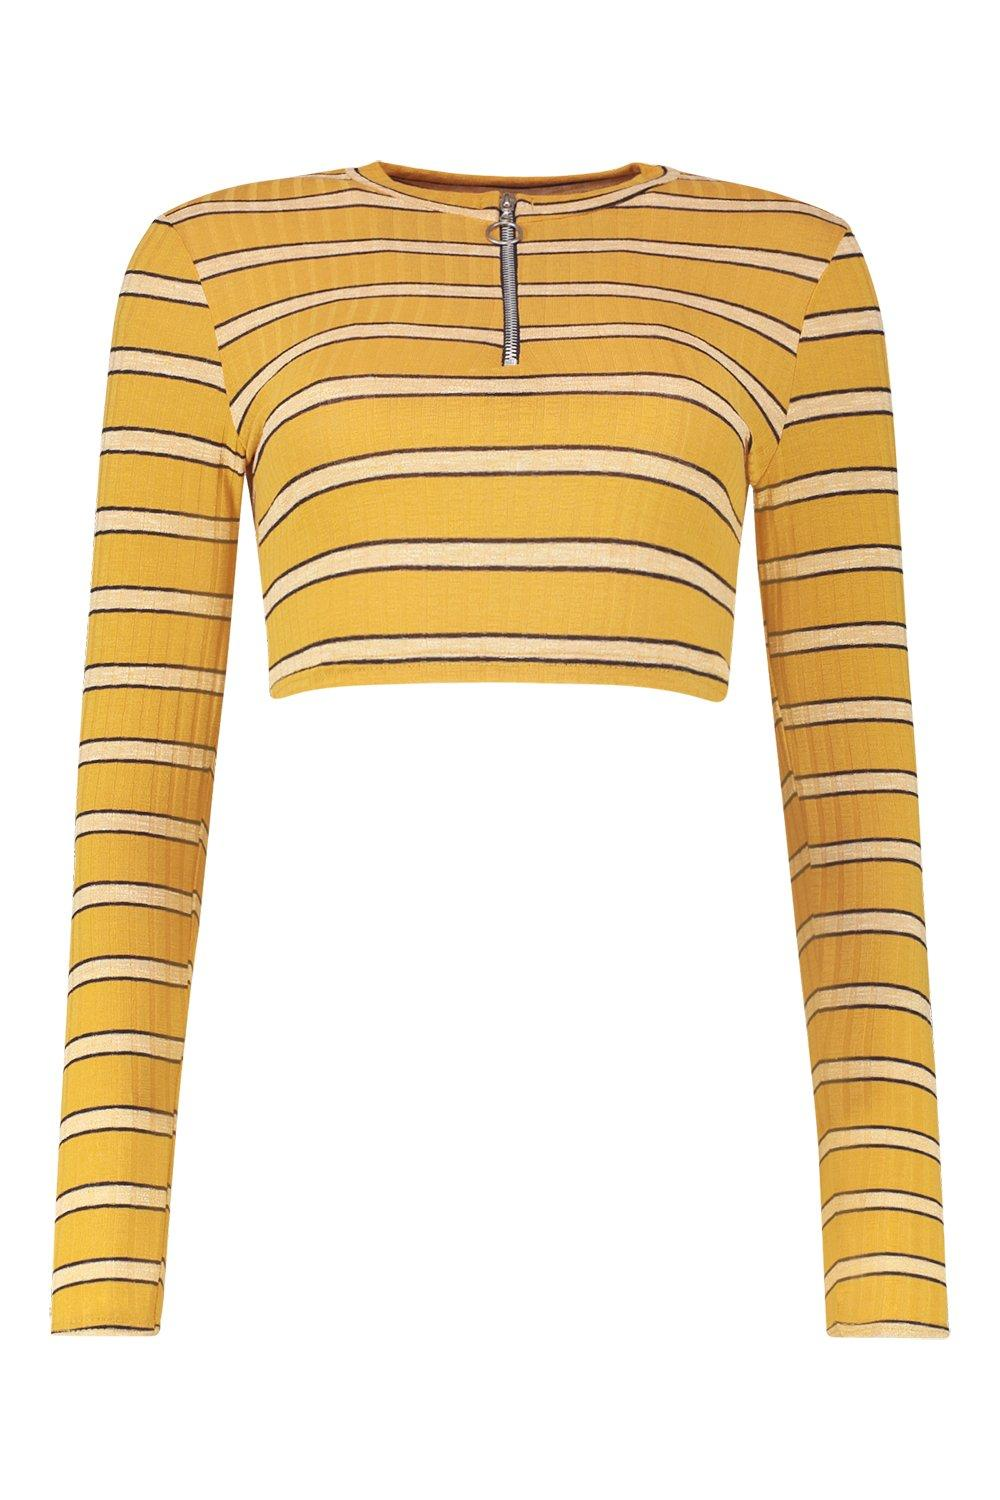 Rib Petite Crop Ring Top O mustard Stripe 54Fw4qrng6